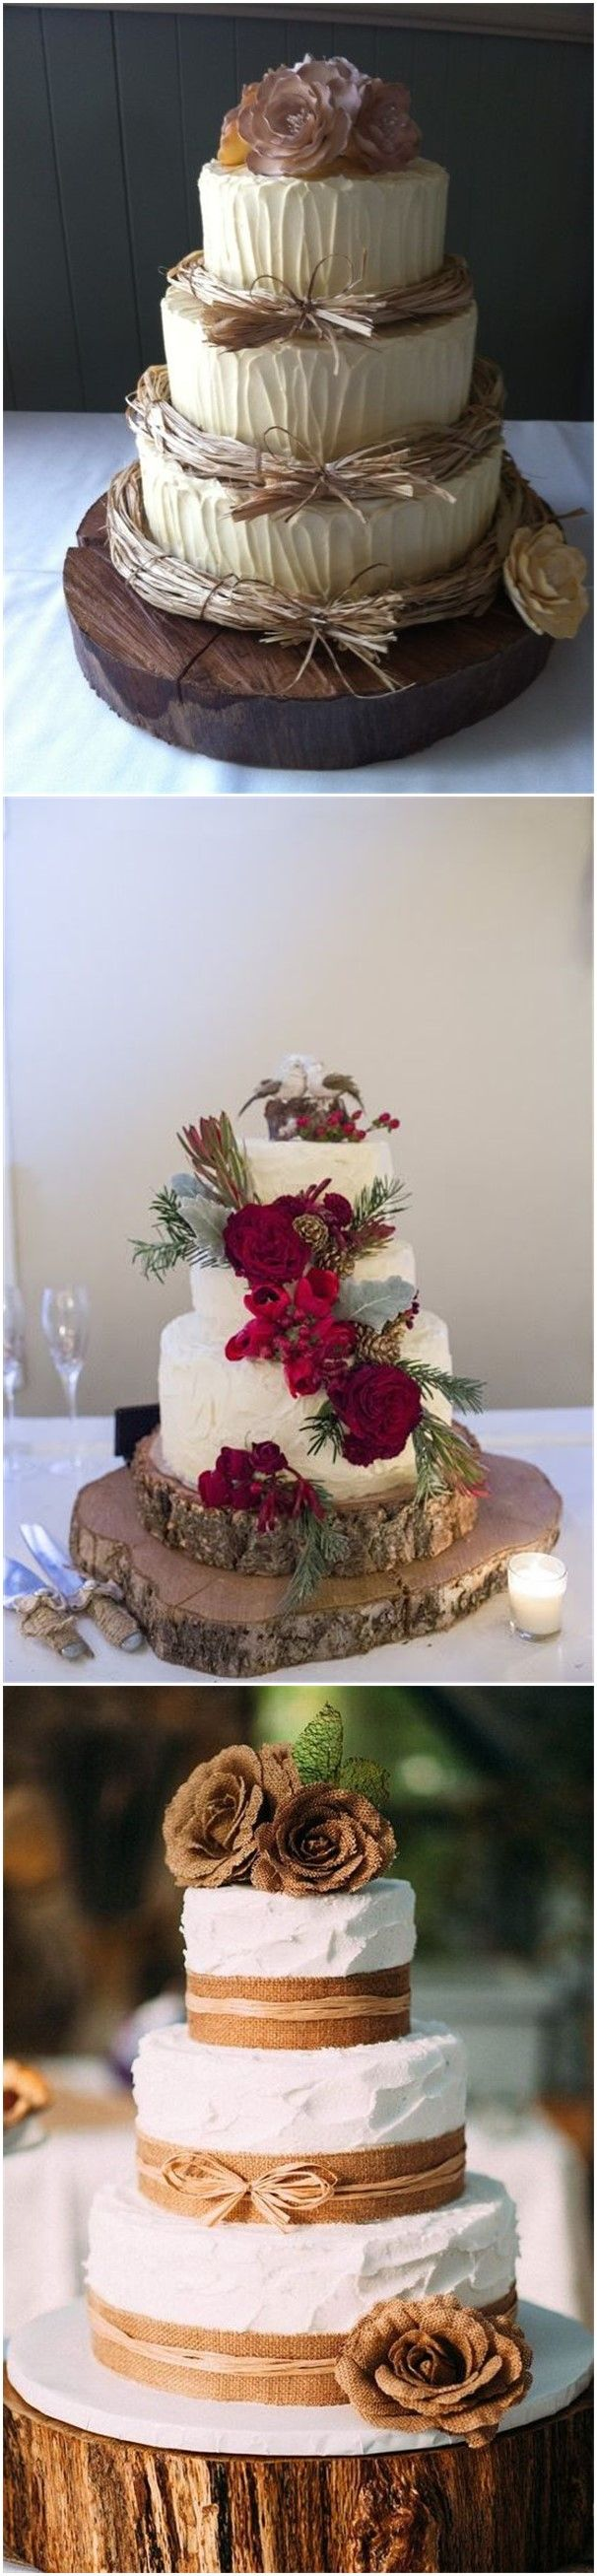 rustic tree stumps wedding cakes for your country wedding cakes